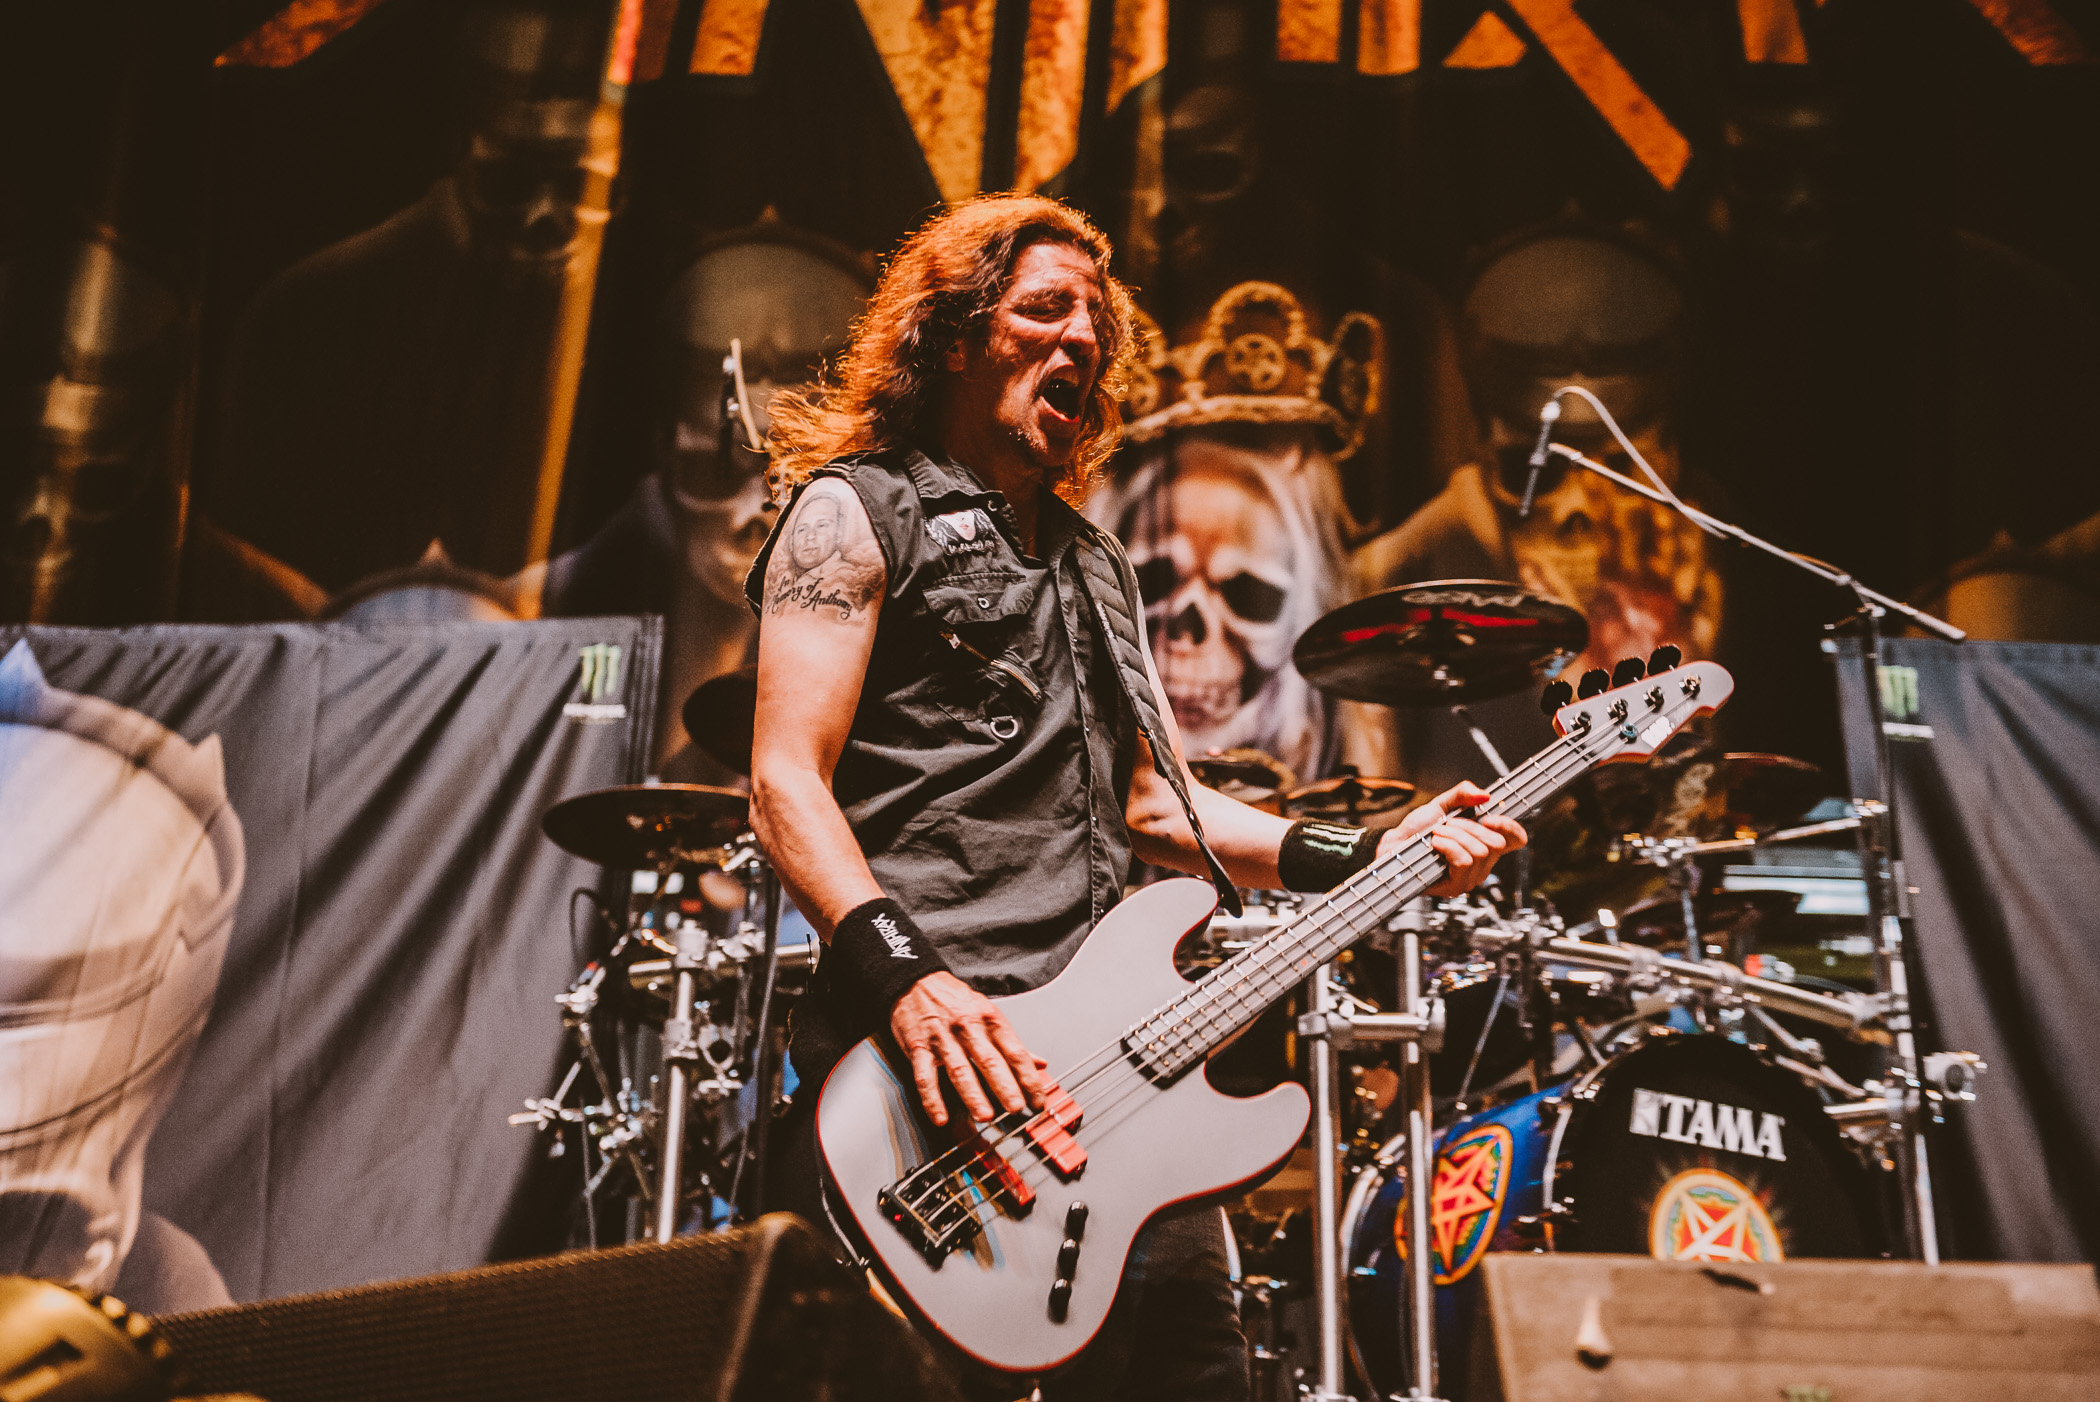 3_Anthrax-Pacific_Coliseum-Timothy_Nguyen-20180516-12.jpg